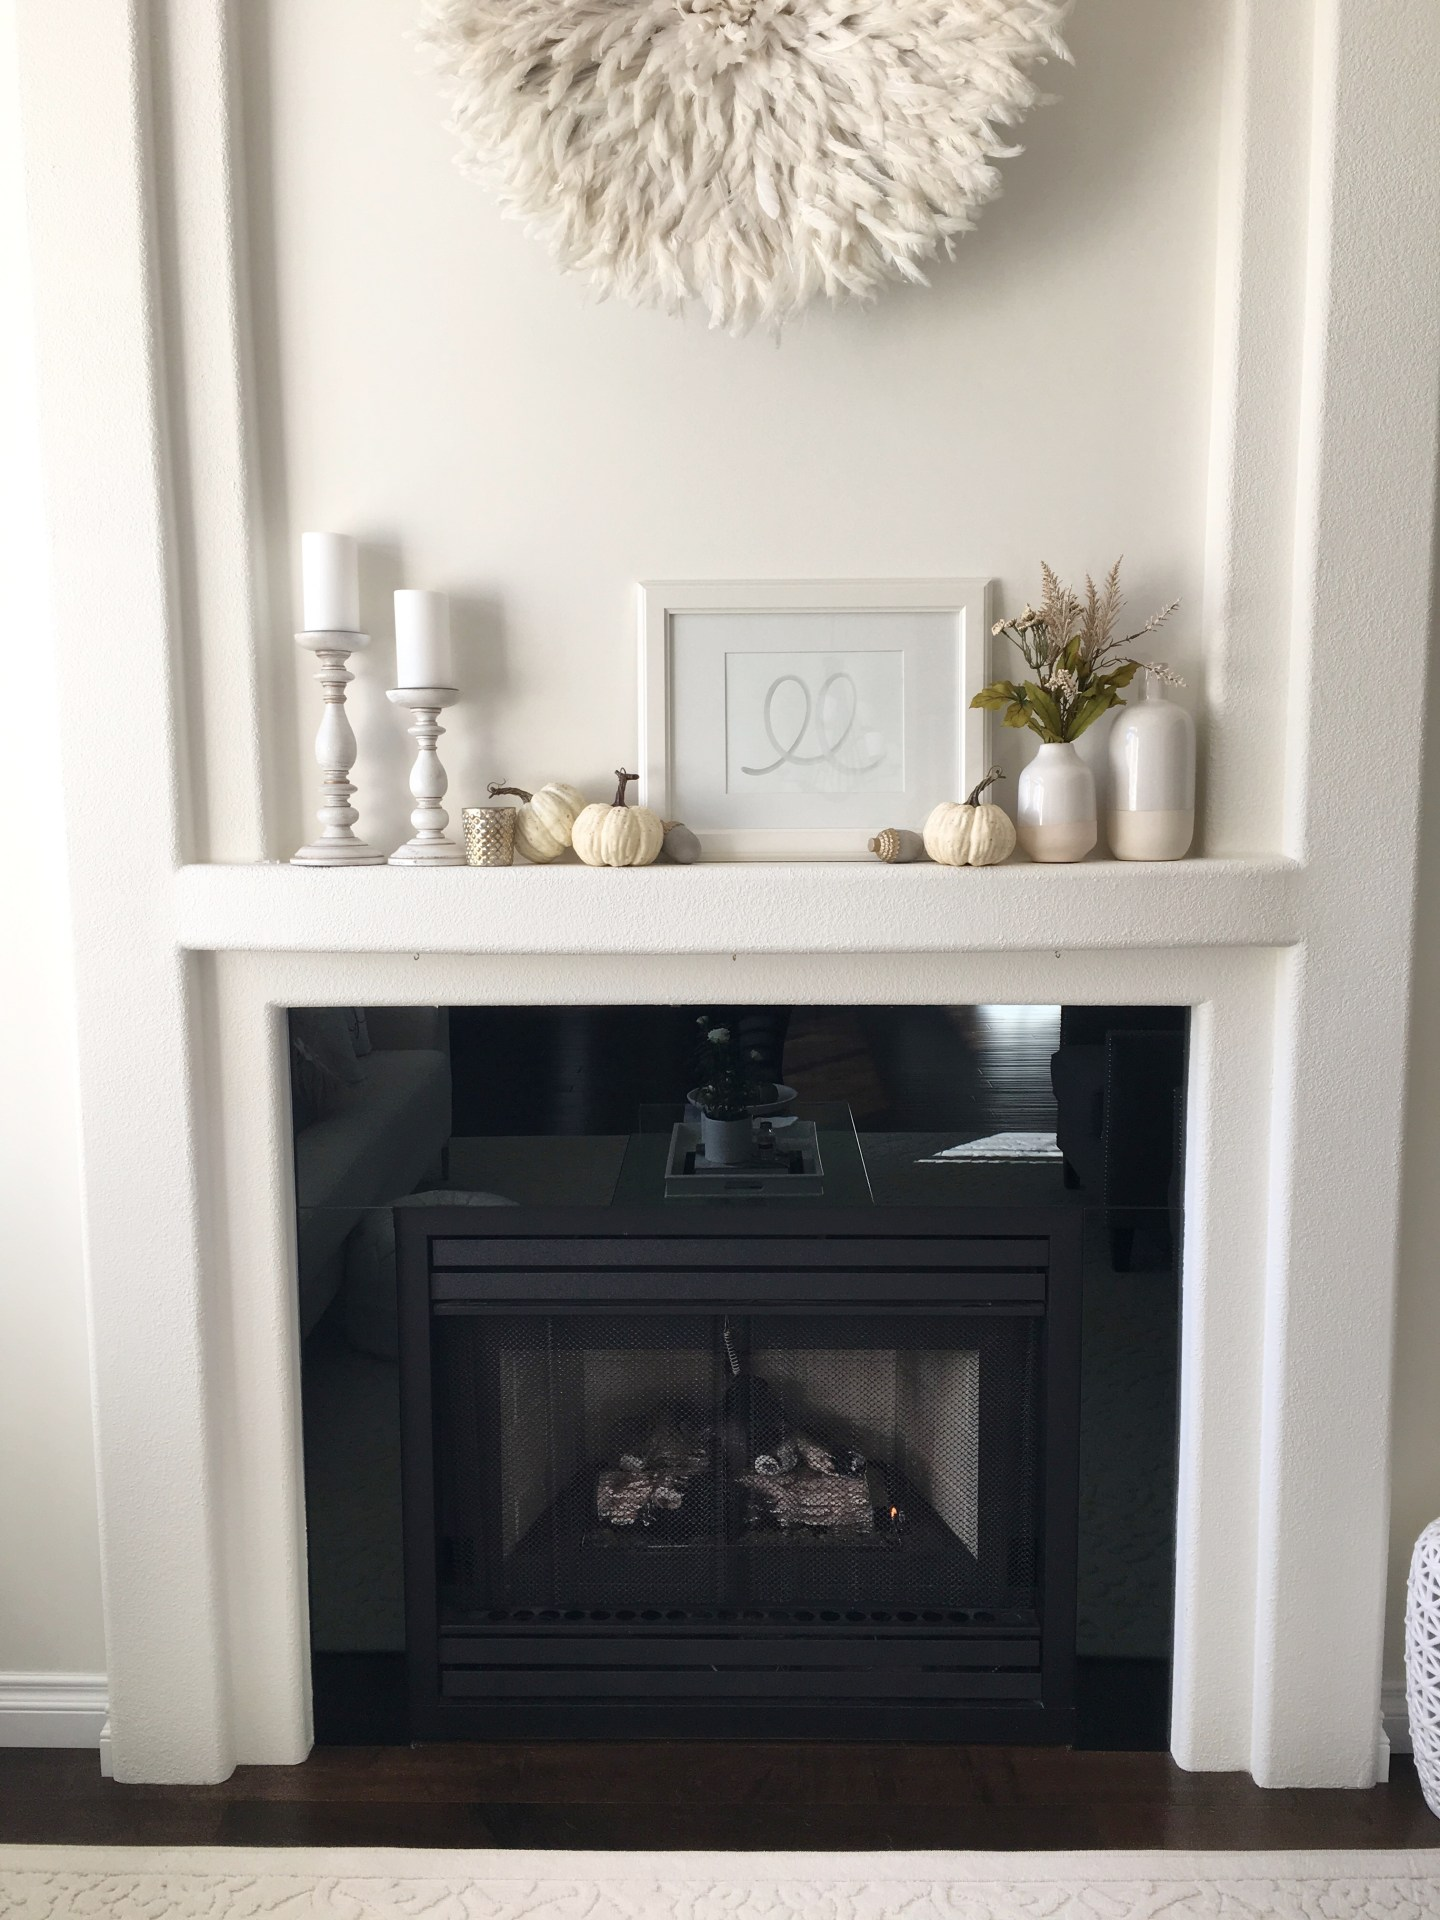 Smart Tiles Diy Fireplace Makeover Life Is Better At Home